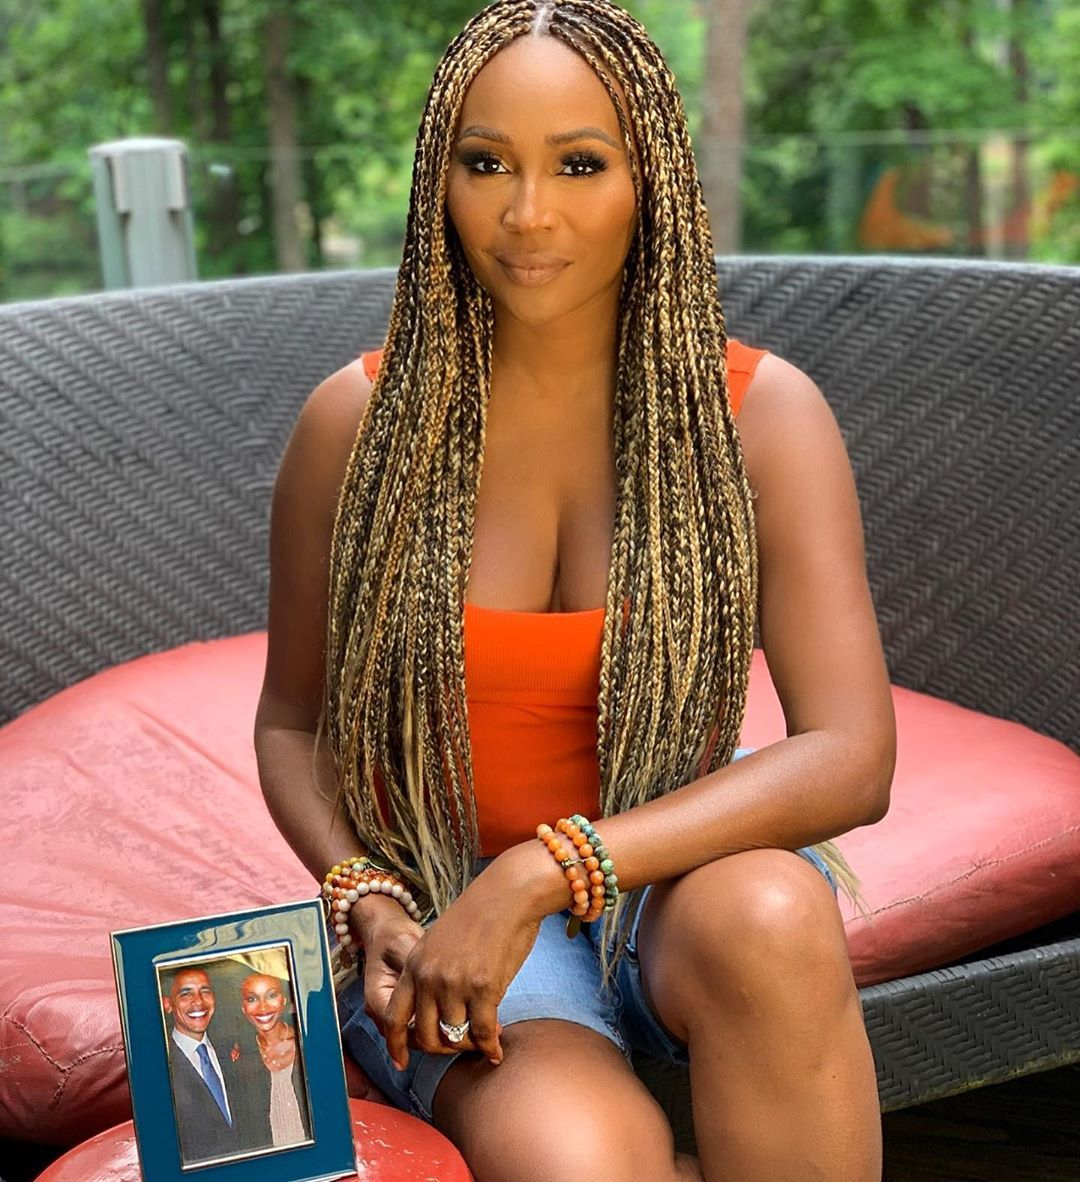 Cynthia Bailey On Instagram Change Will Not Come If We Wait For Some Other Person Or Some Other Cynthia Bailey Box Braids Hairstyles Black Women Hairstyles